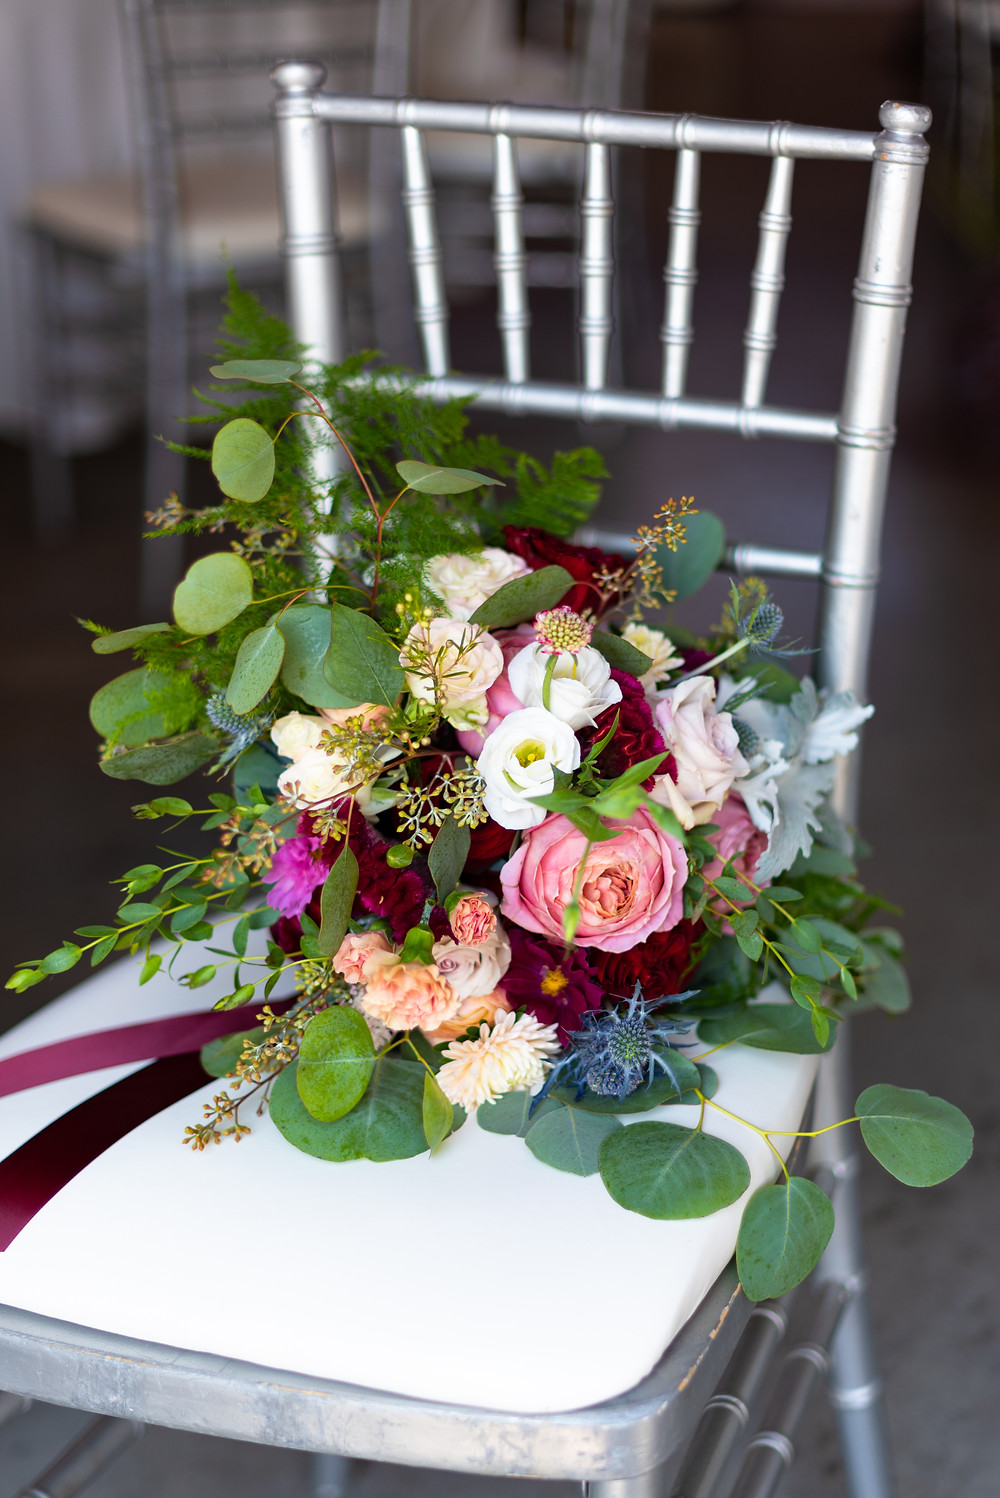 Bridal bouquet by Gypsie Annie with burgundy roses and greenery